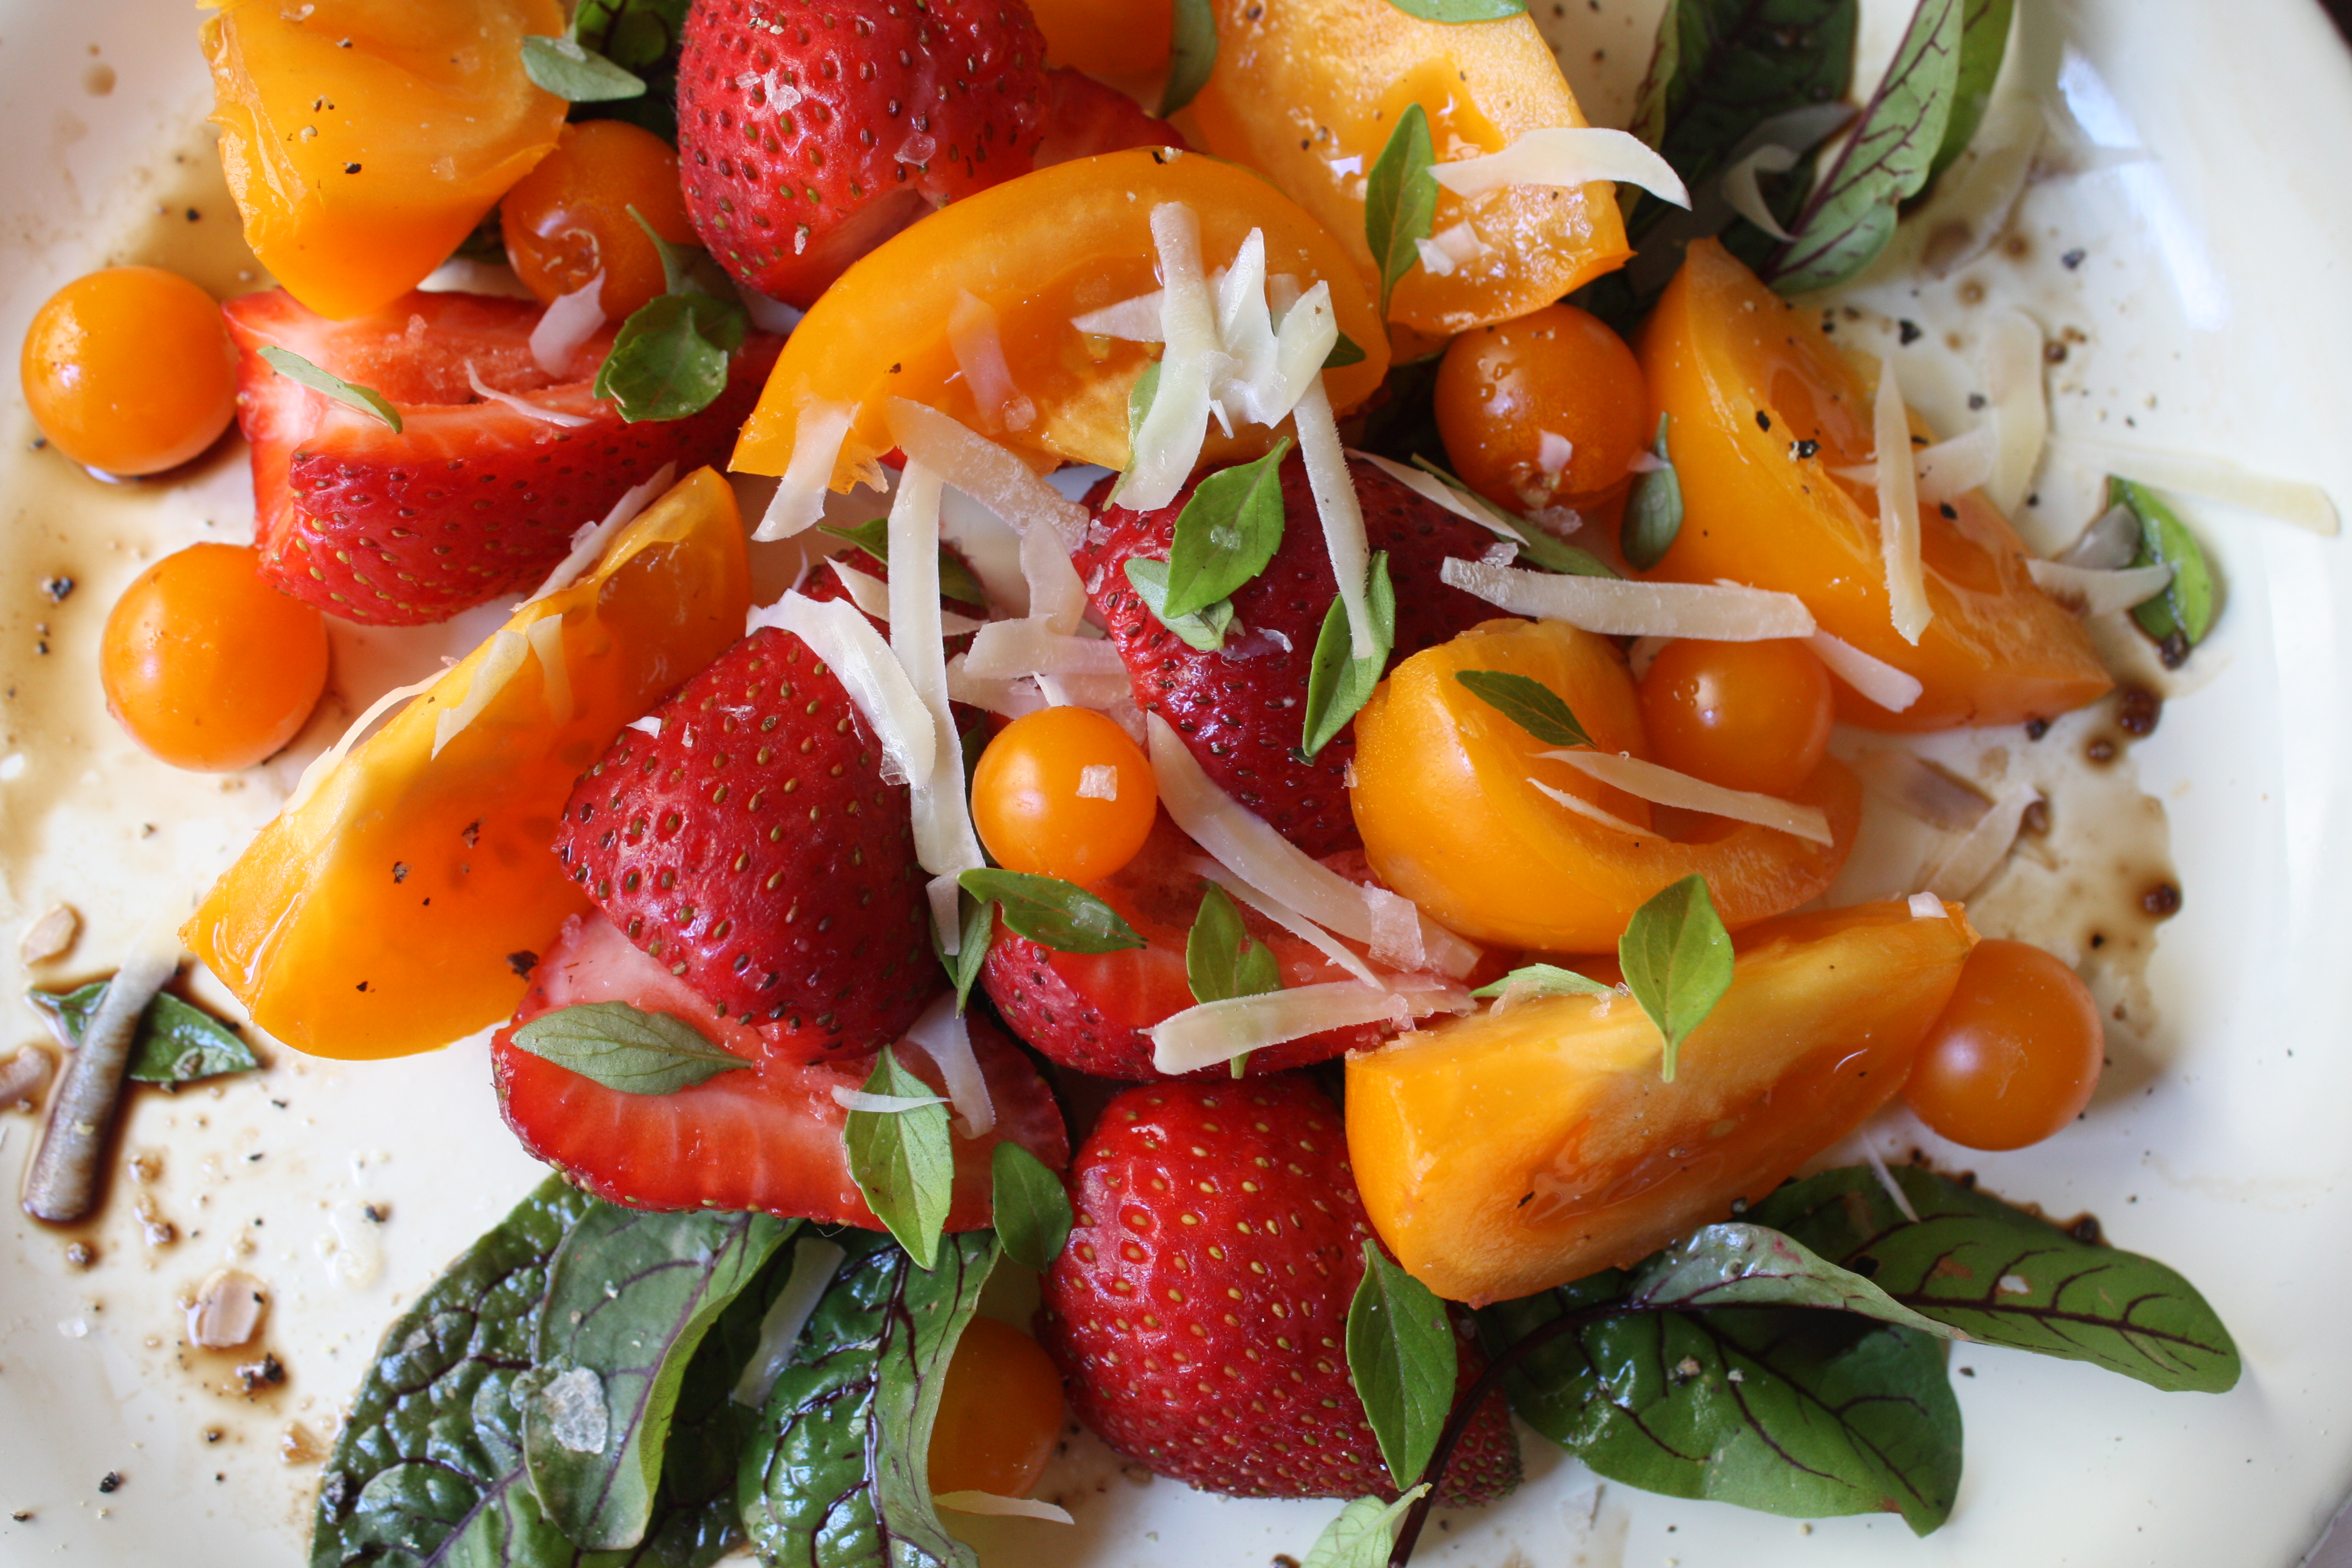 Bittman Salad 13:  Strawberries and Tomatoes